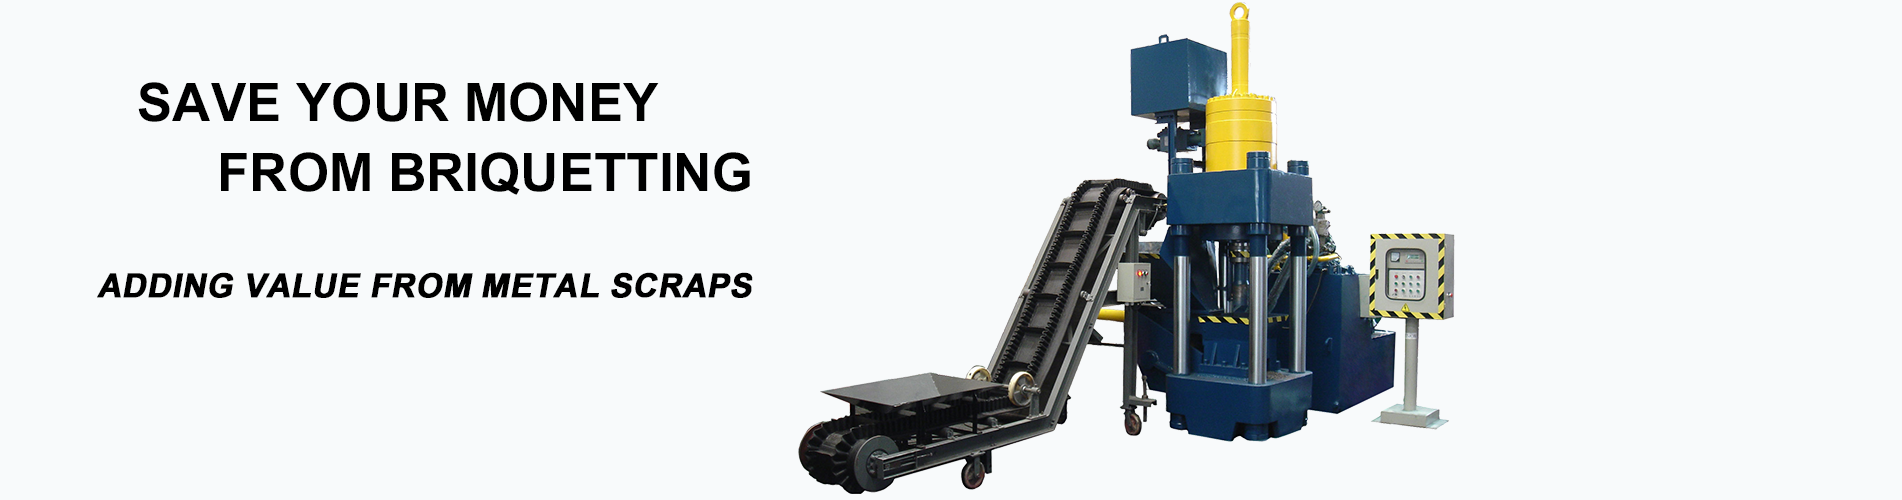 metal briquetting machine banner